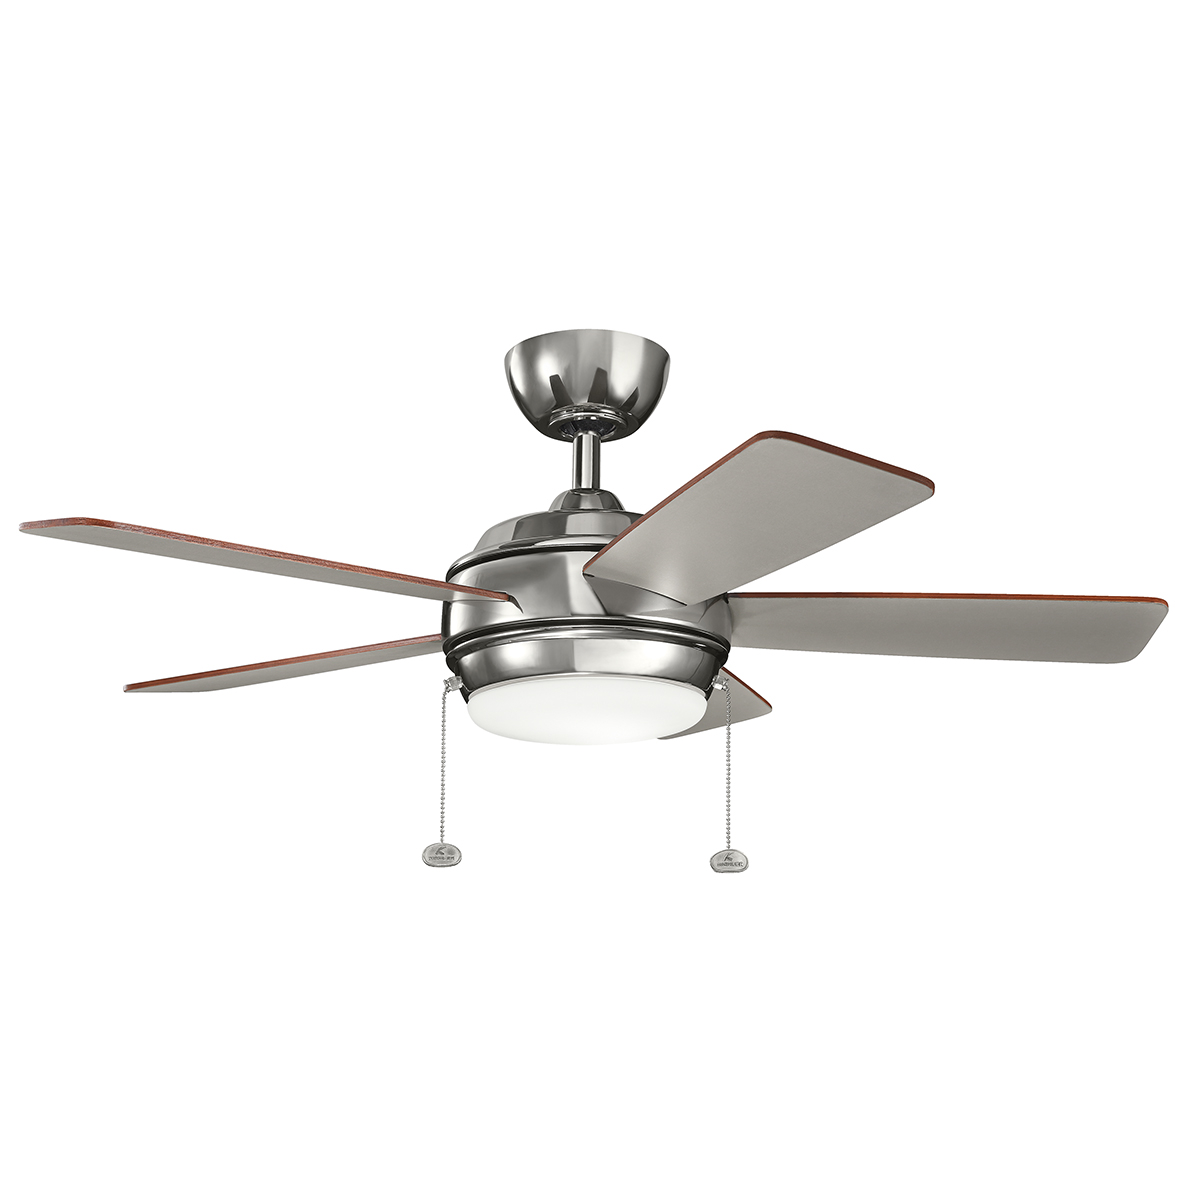 42 inchCeiling Fan from the Starkk collection by Kichler 330171PN